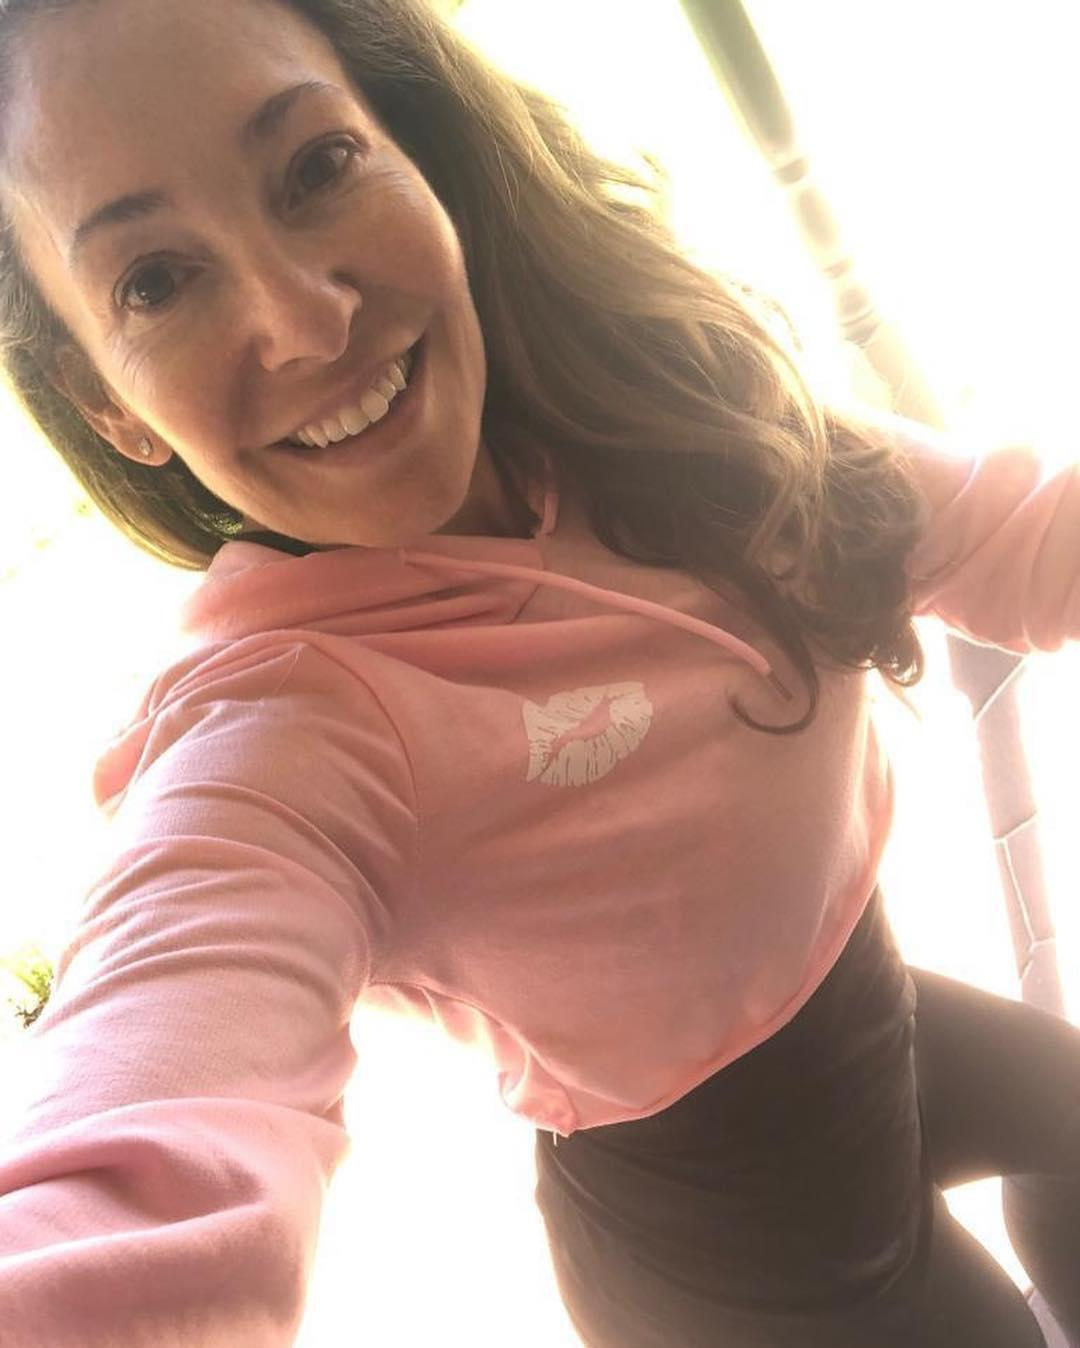 fit over 40 - hot selfies from athletic cougar bertha from wisconsin (leggings) picture 9